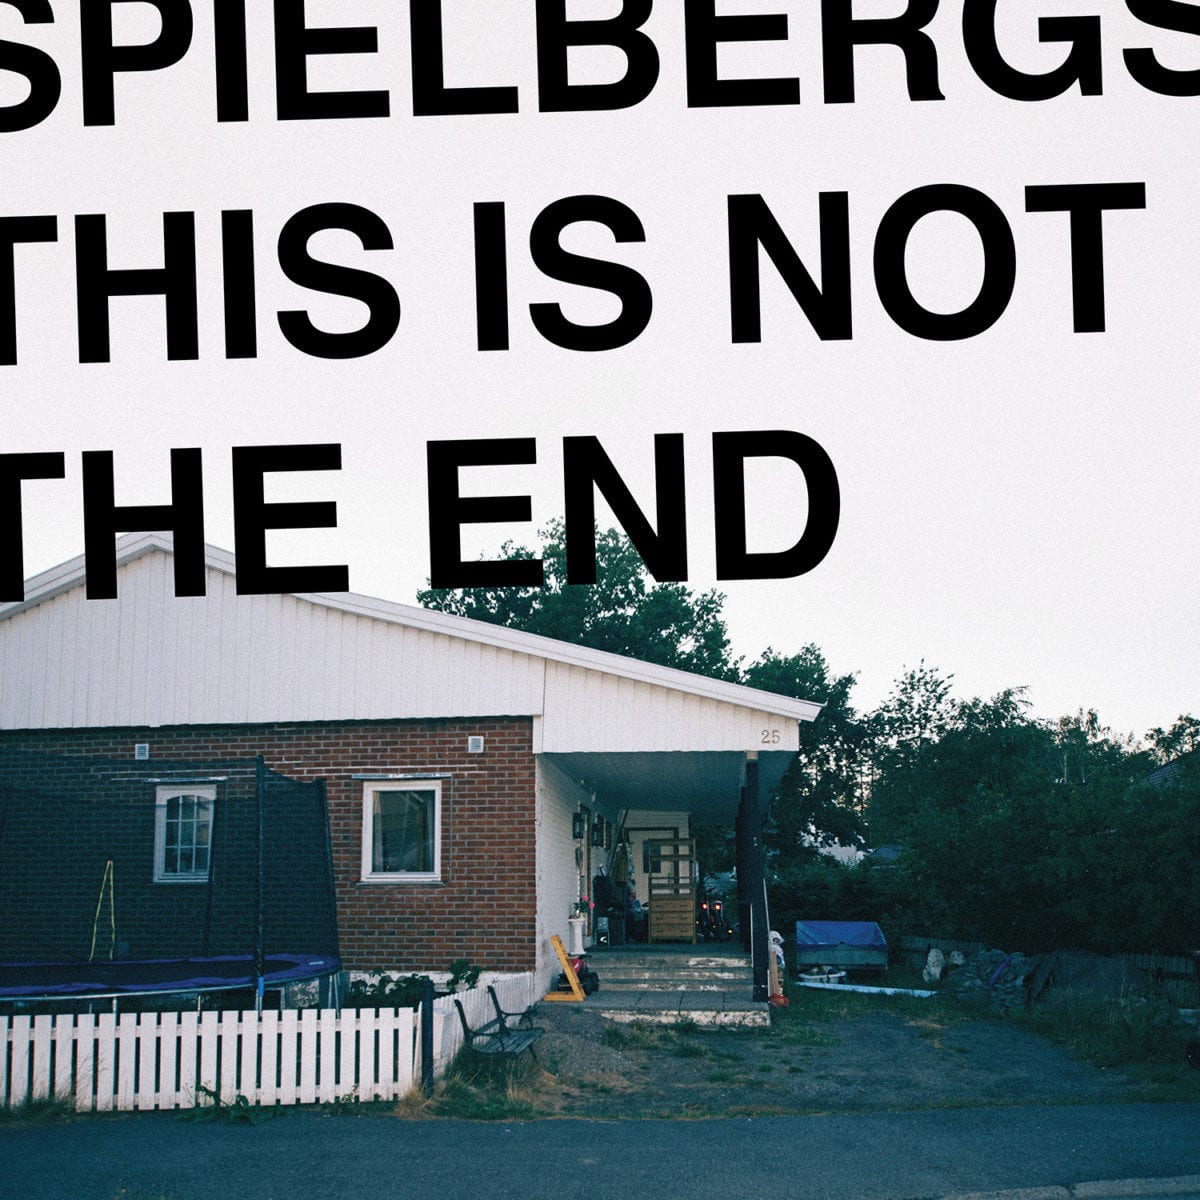 Spielbergs 4AM